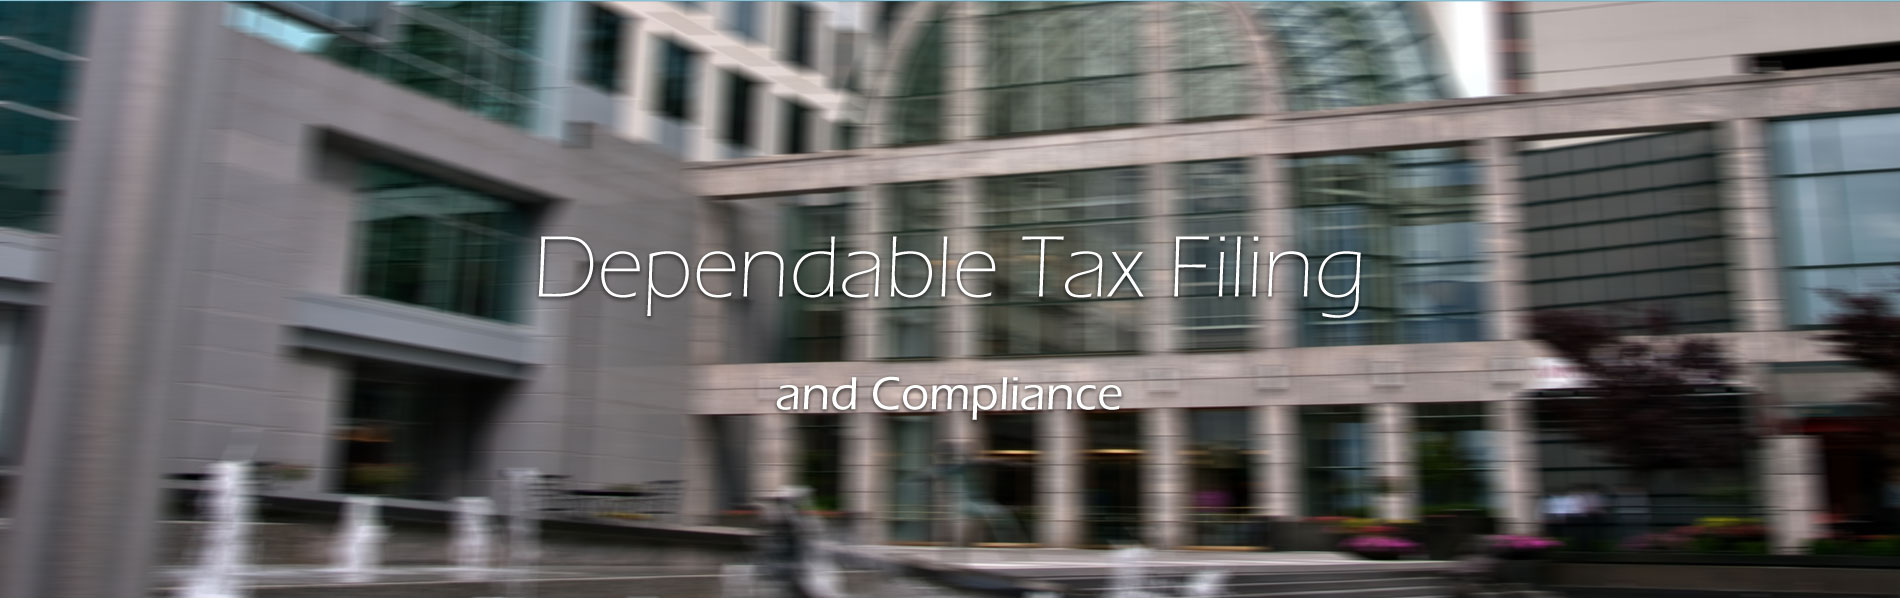 2-Dependable-Tax-Filing